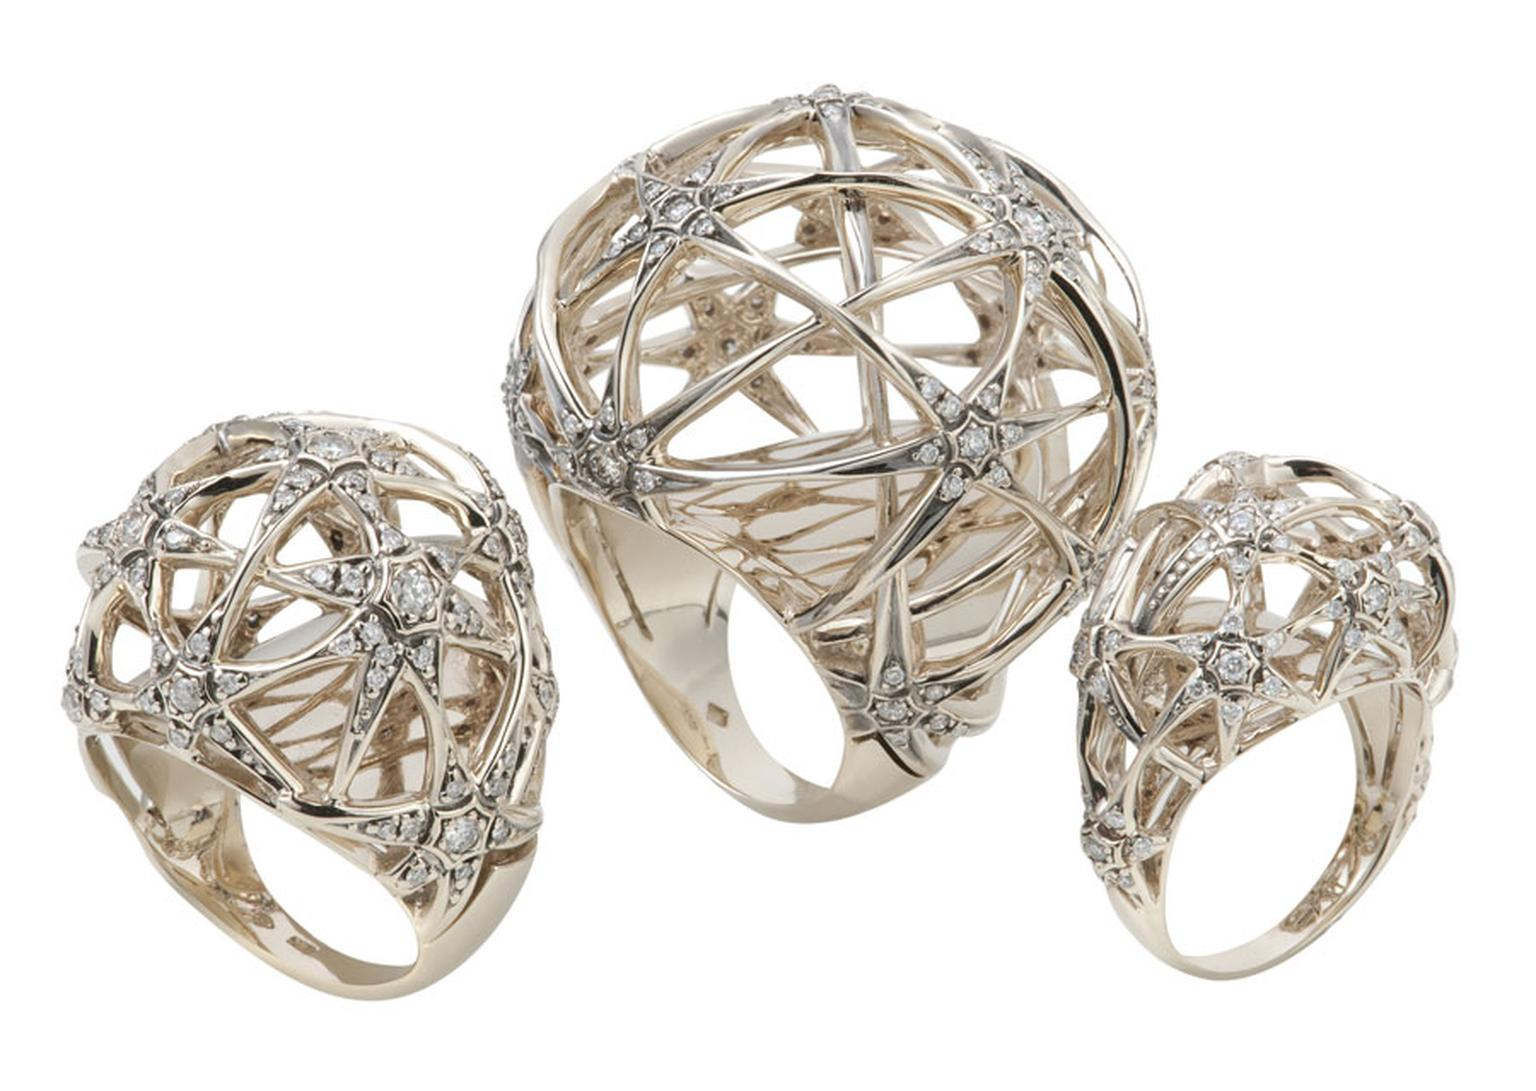 HStern Copernicus-Rings-in-Noble-Gold-and-diamonds.  £6,600, £ 8,900, £3,000